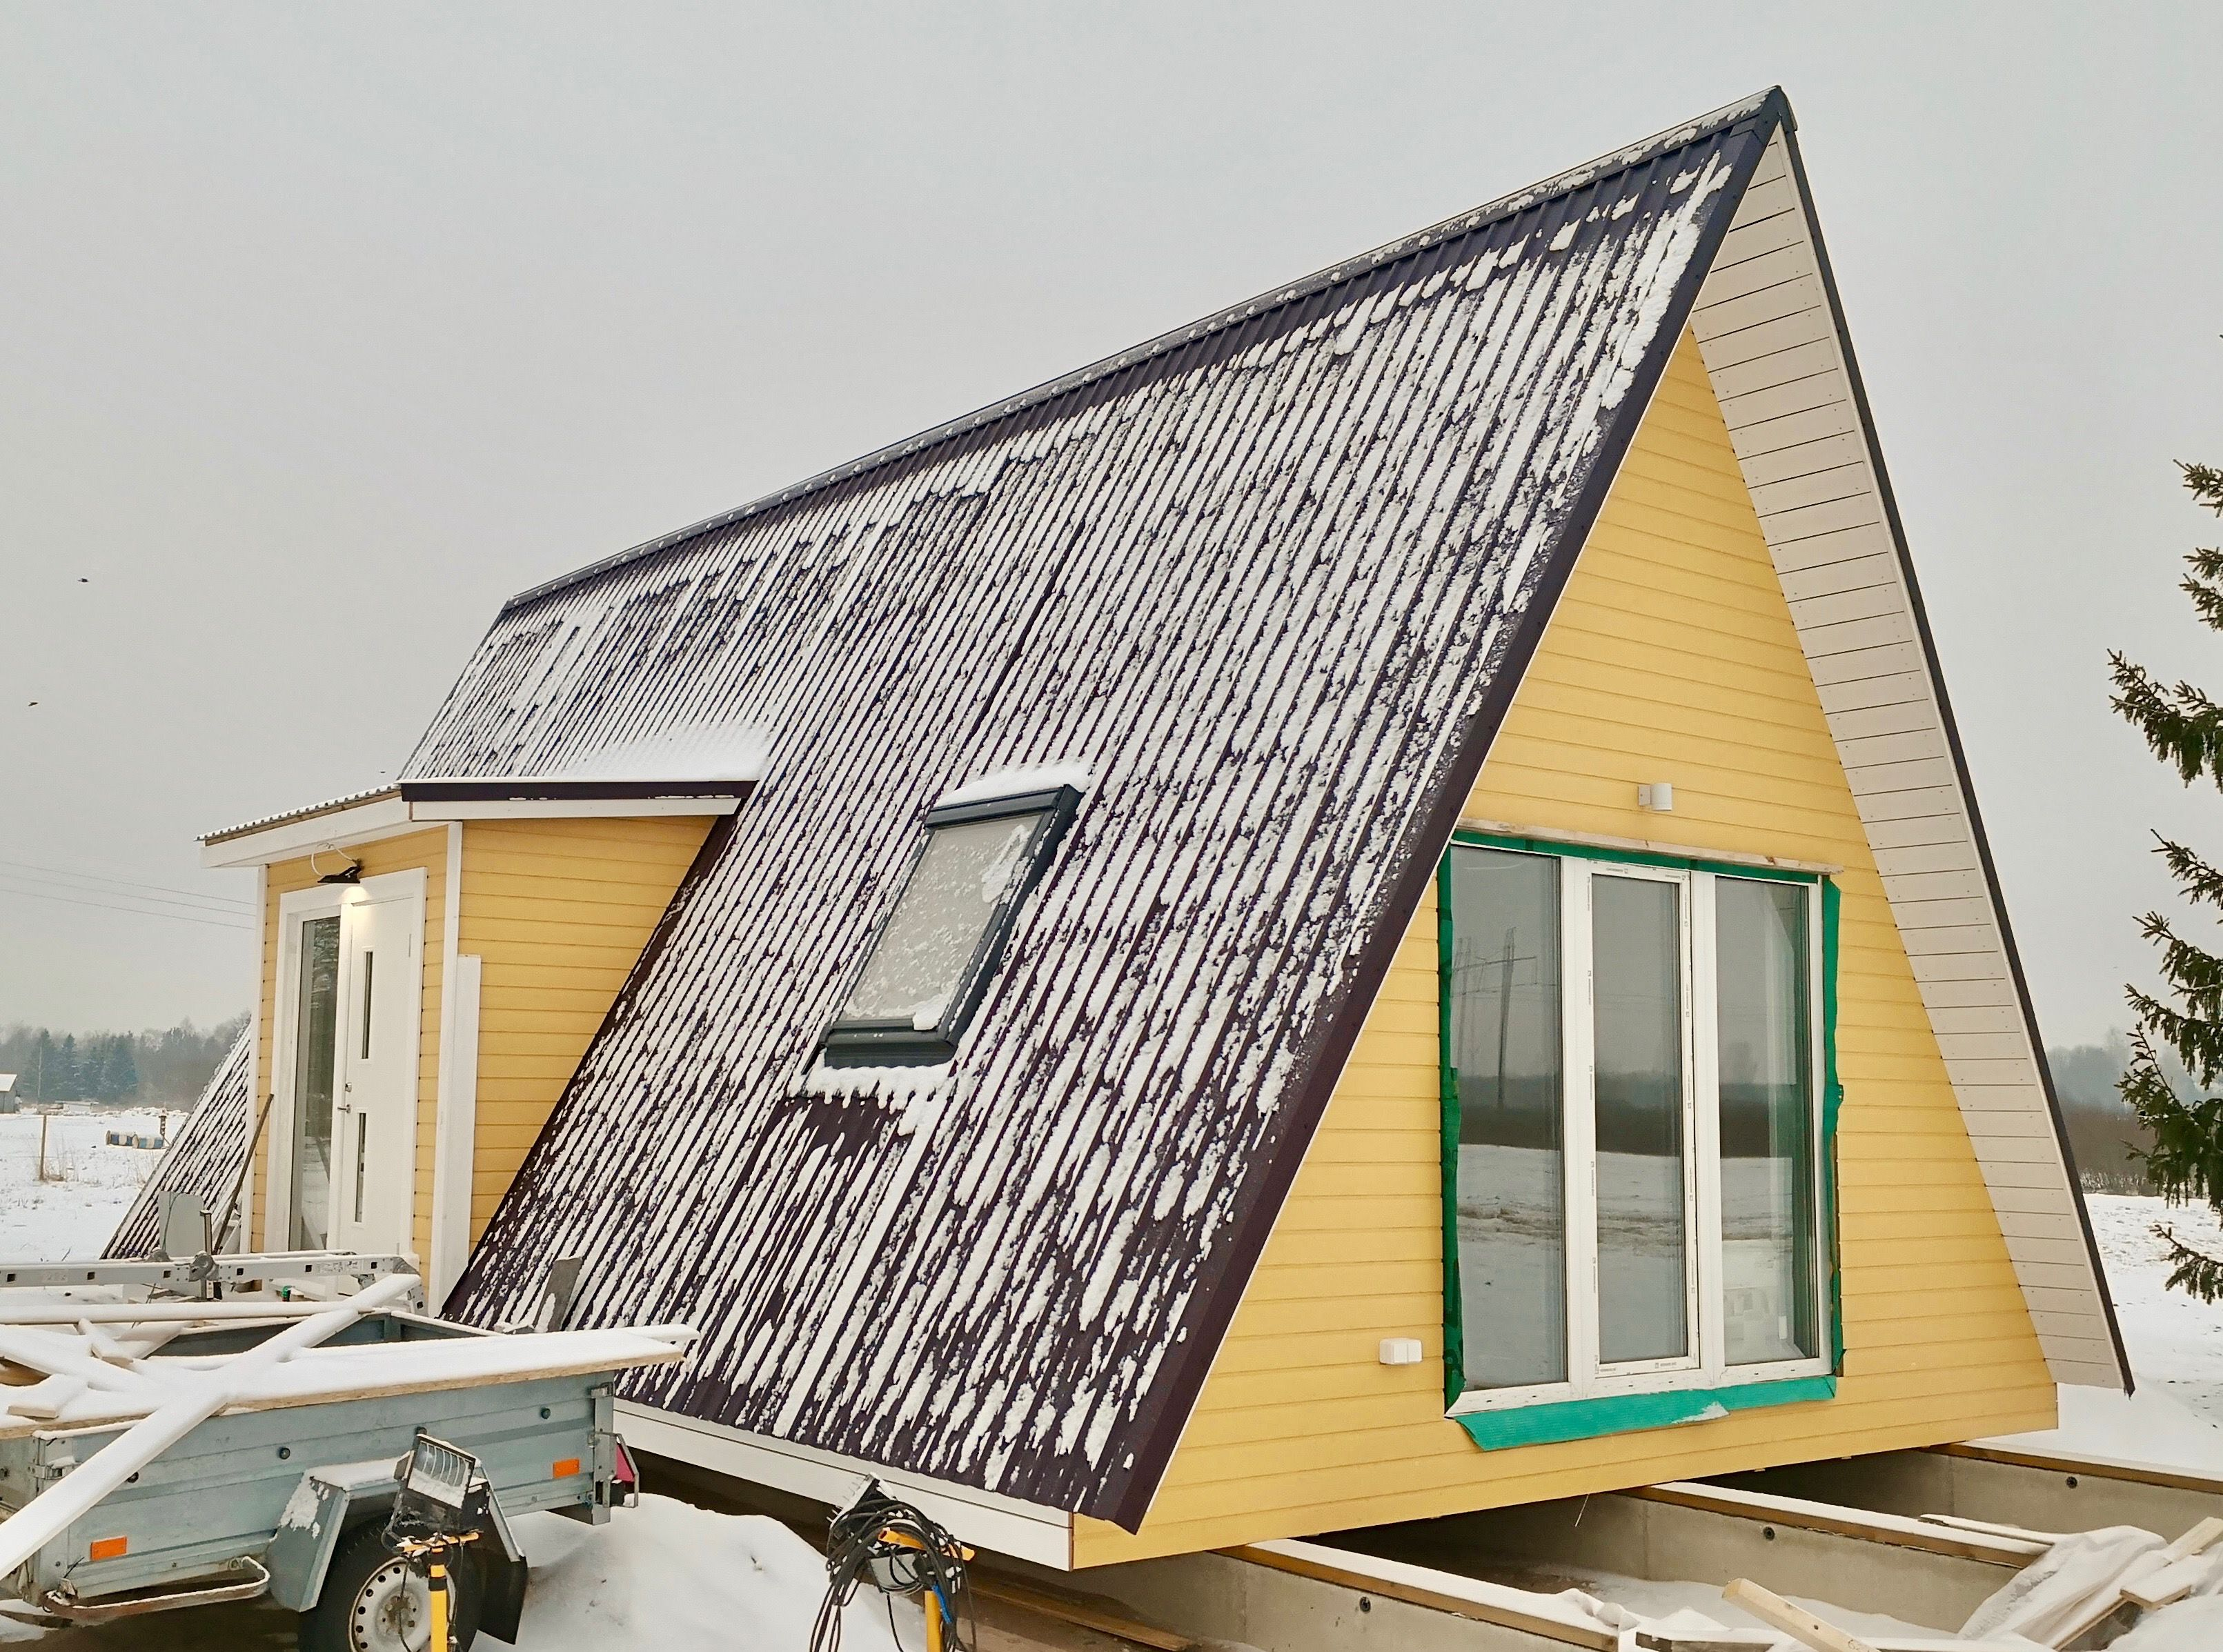 1 Bedroom 1 Bathroom A Frame Starter Home With Loft Good For Off The Grid Living And Affordable Housing Kit Homes A Frame House Affordable Housing